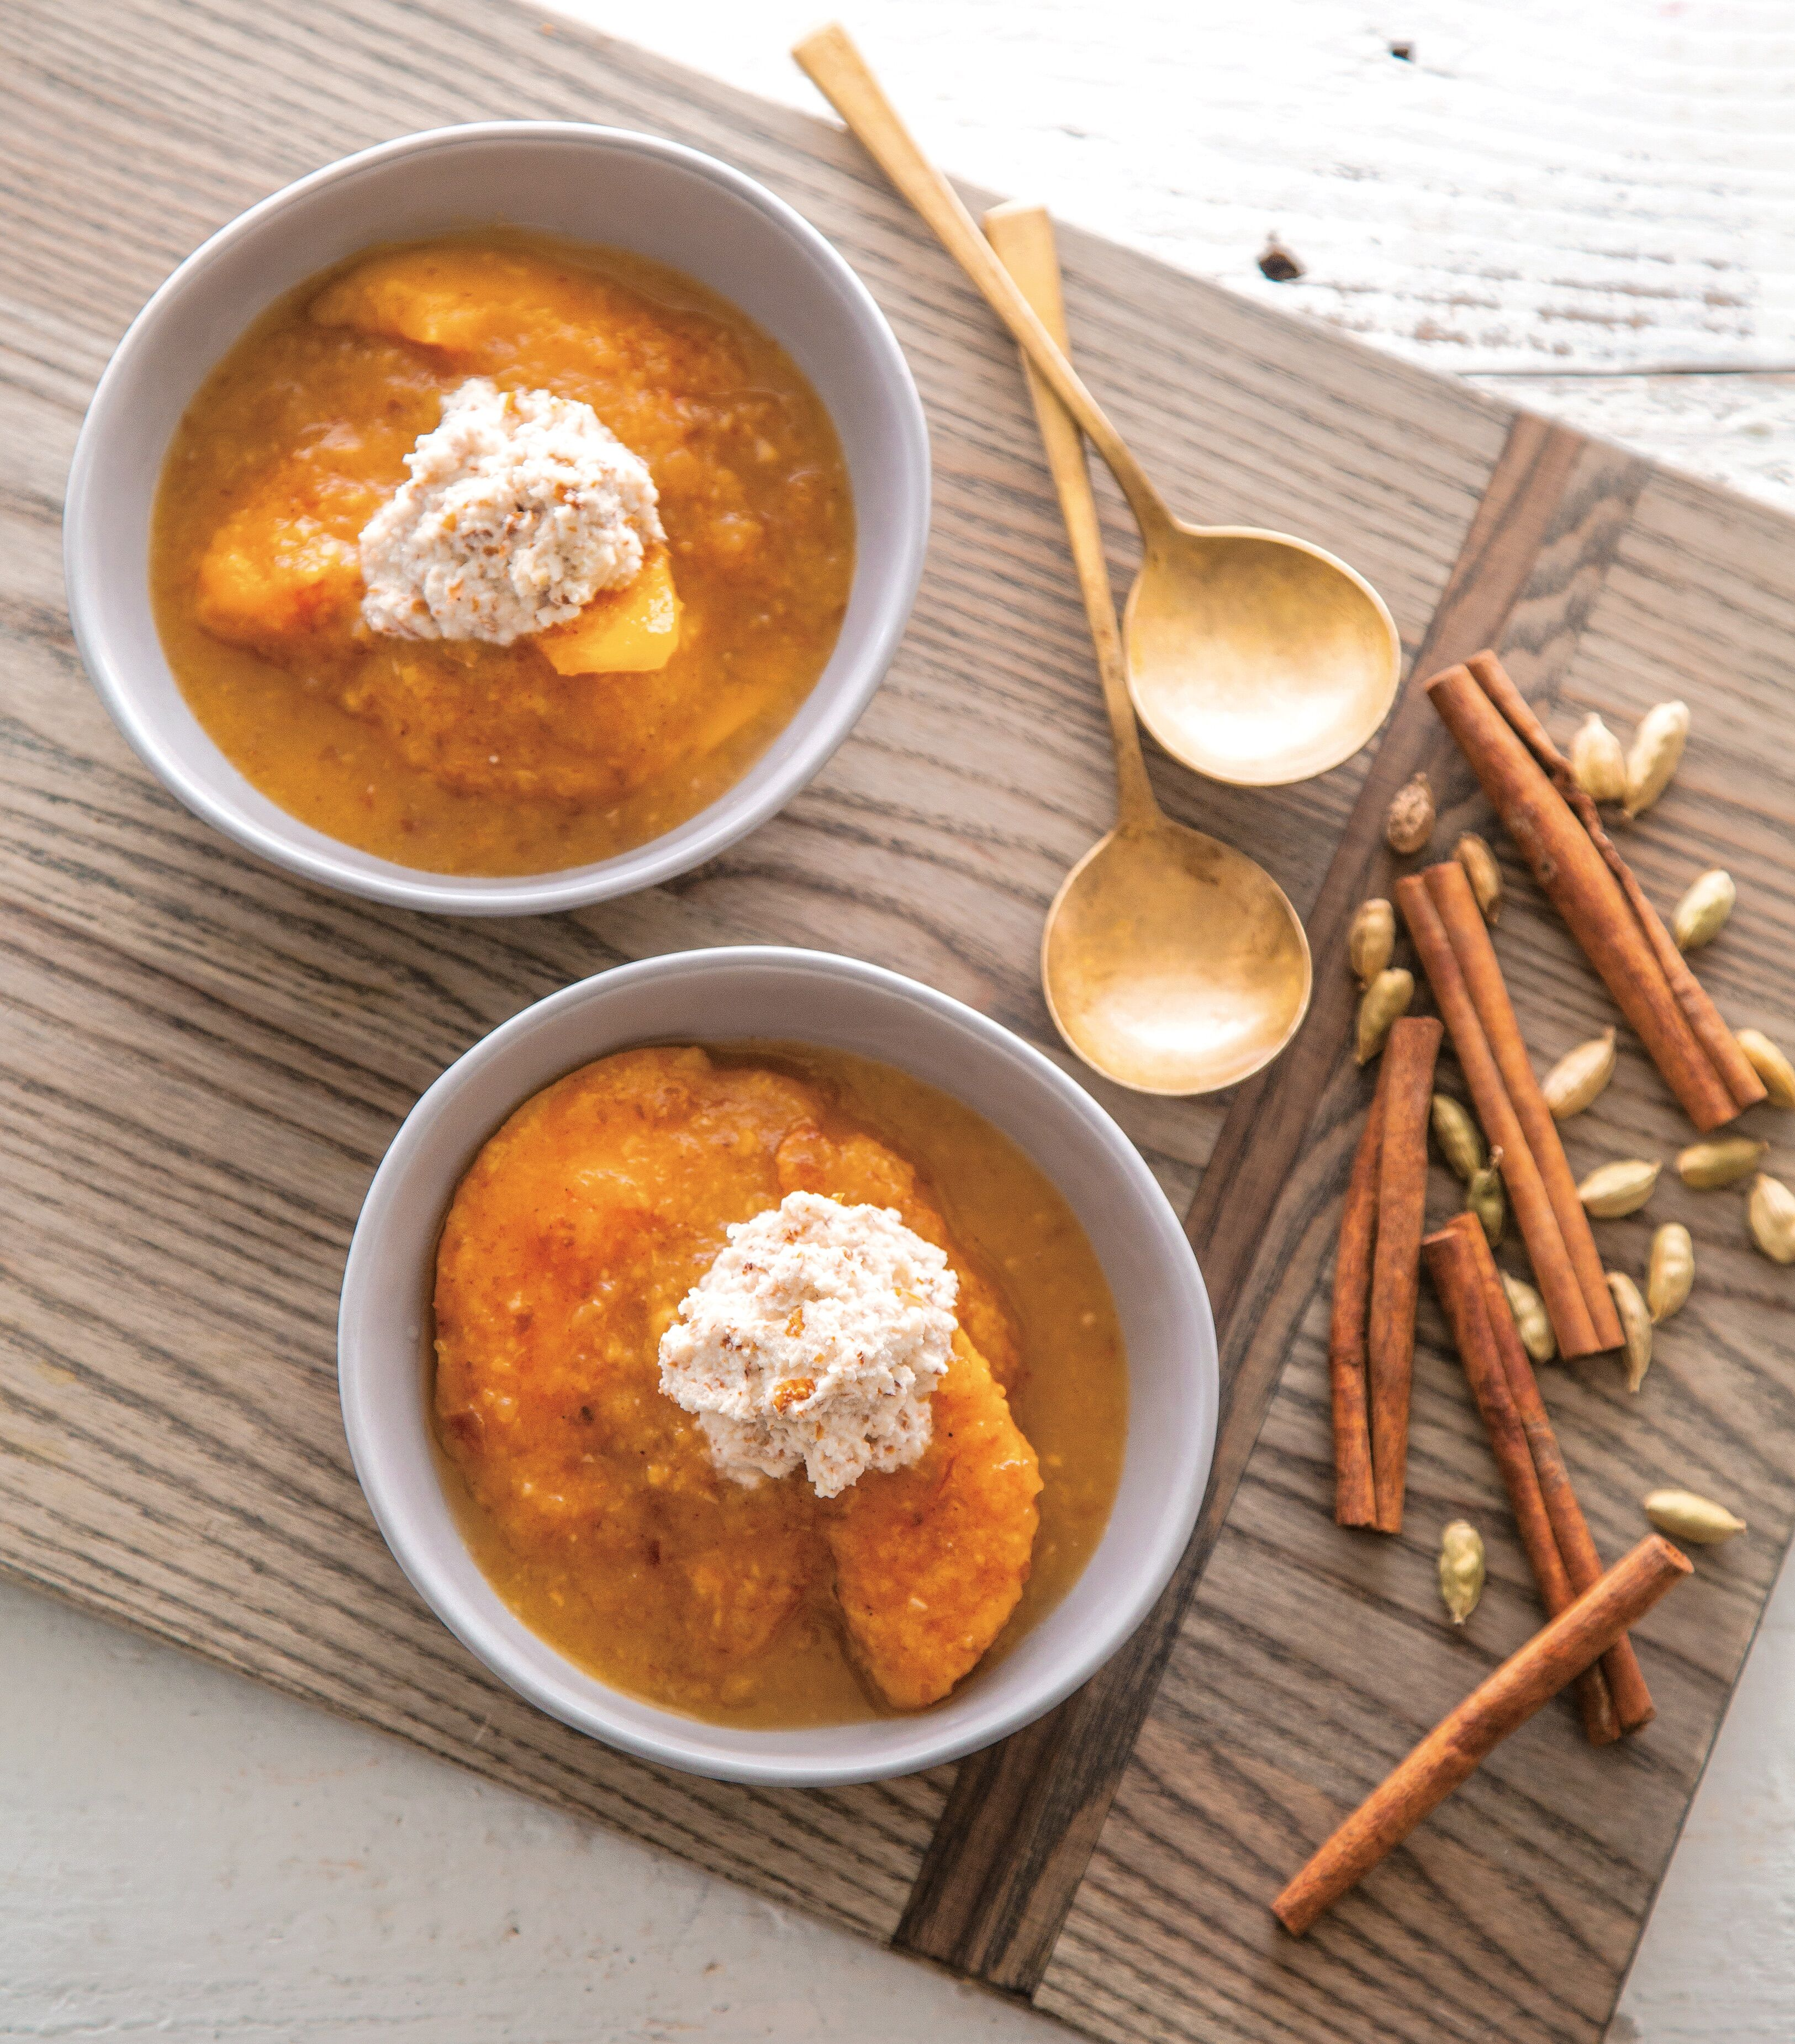 Stewed Peaches with Dates, Cardamom and Almond Cream